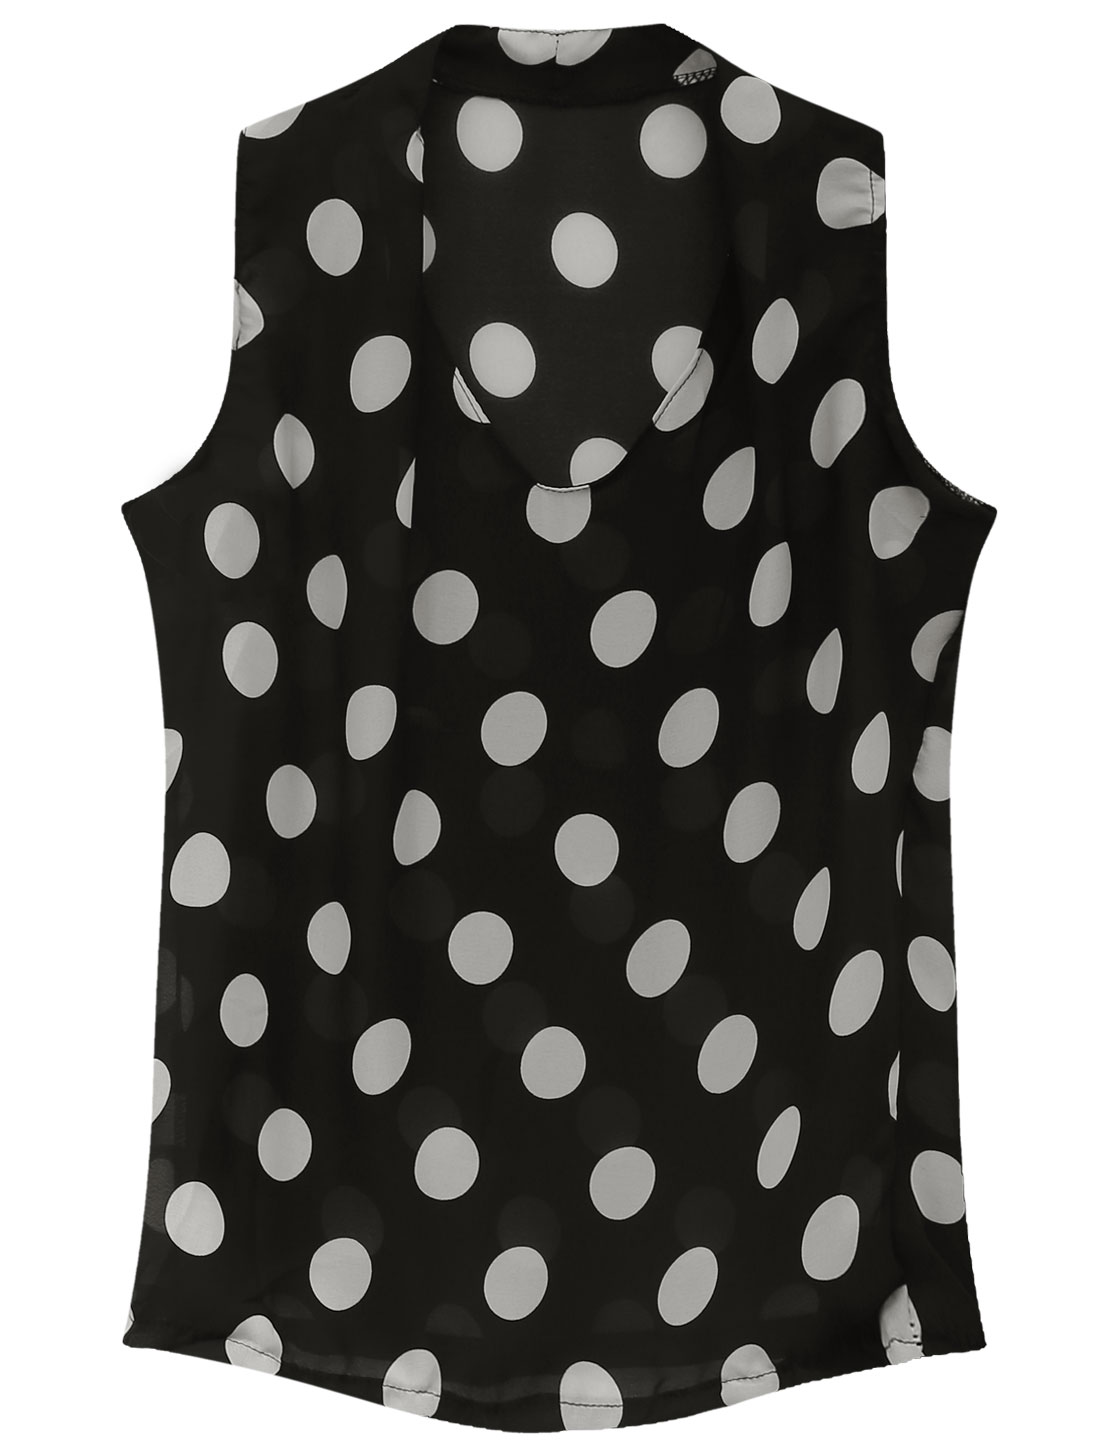 Lady V Neck Sleeveless Dots Prints Semi Sheer Chiffon Blouse Black S